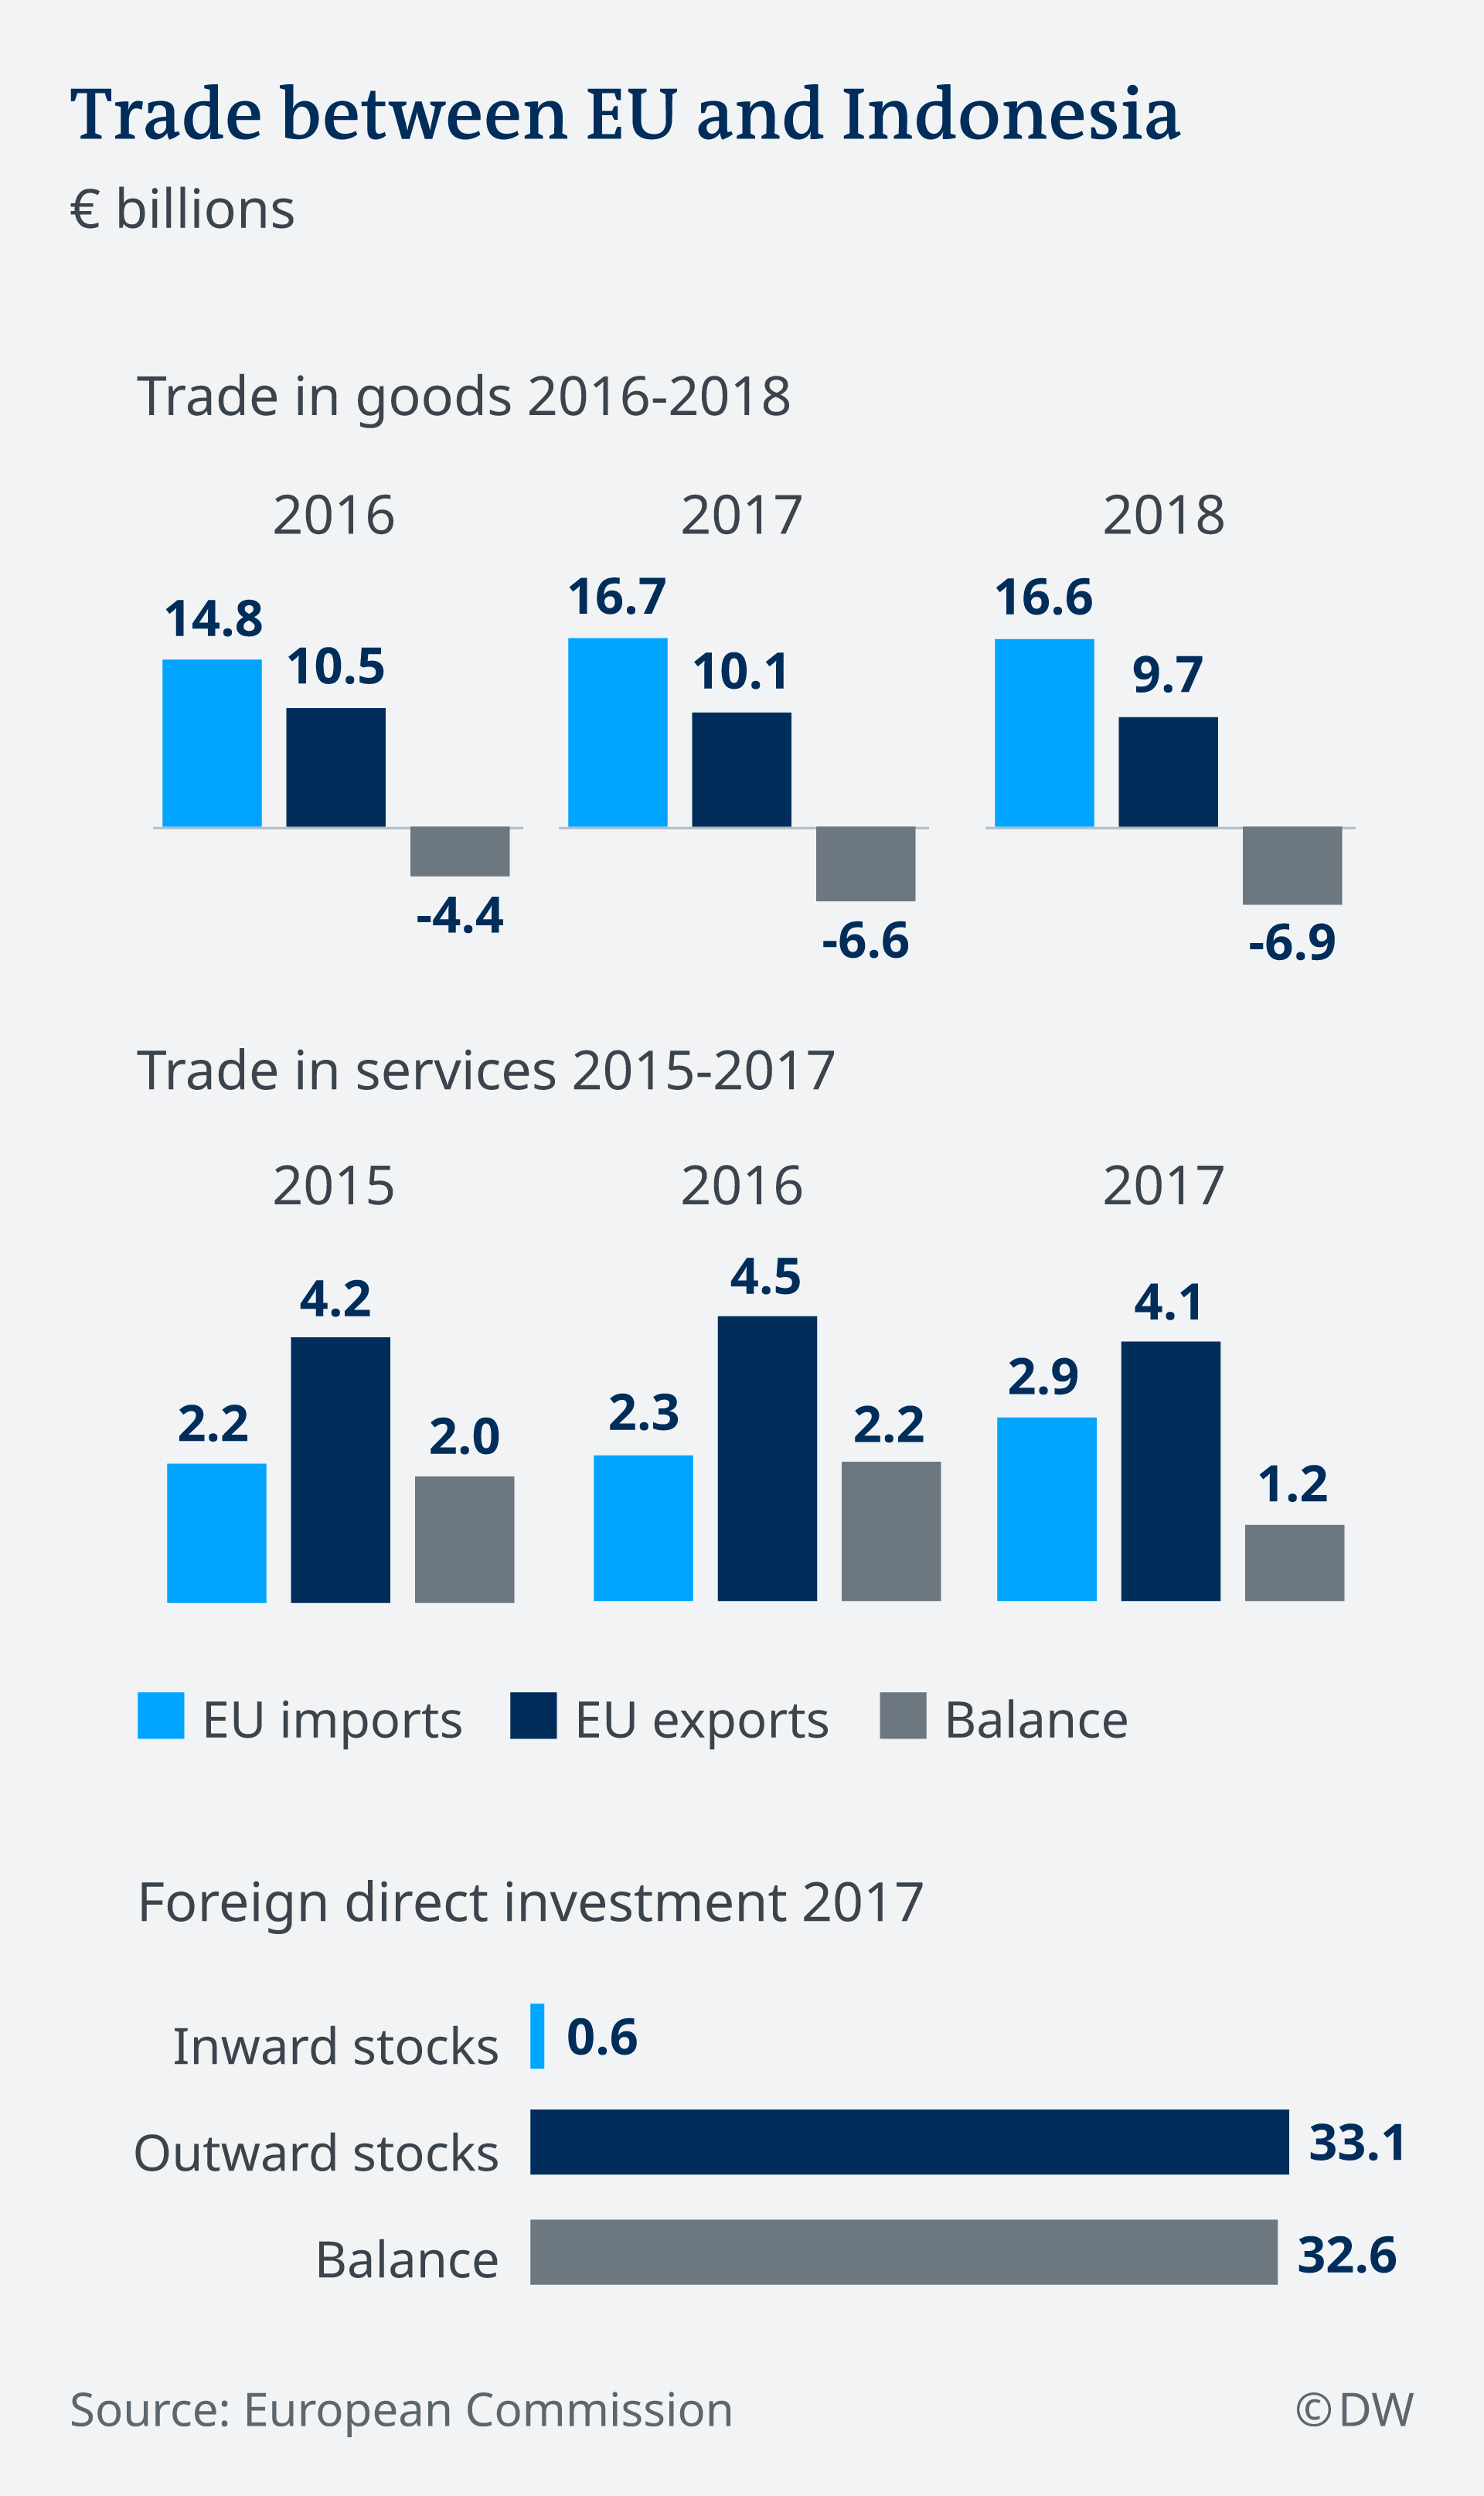 An infographic showing trade volumes between the EU and Indonesia